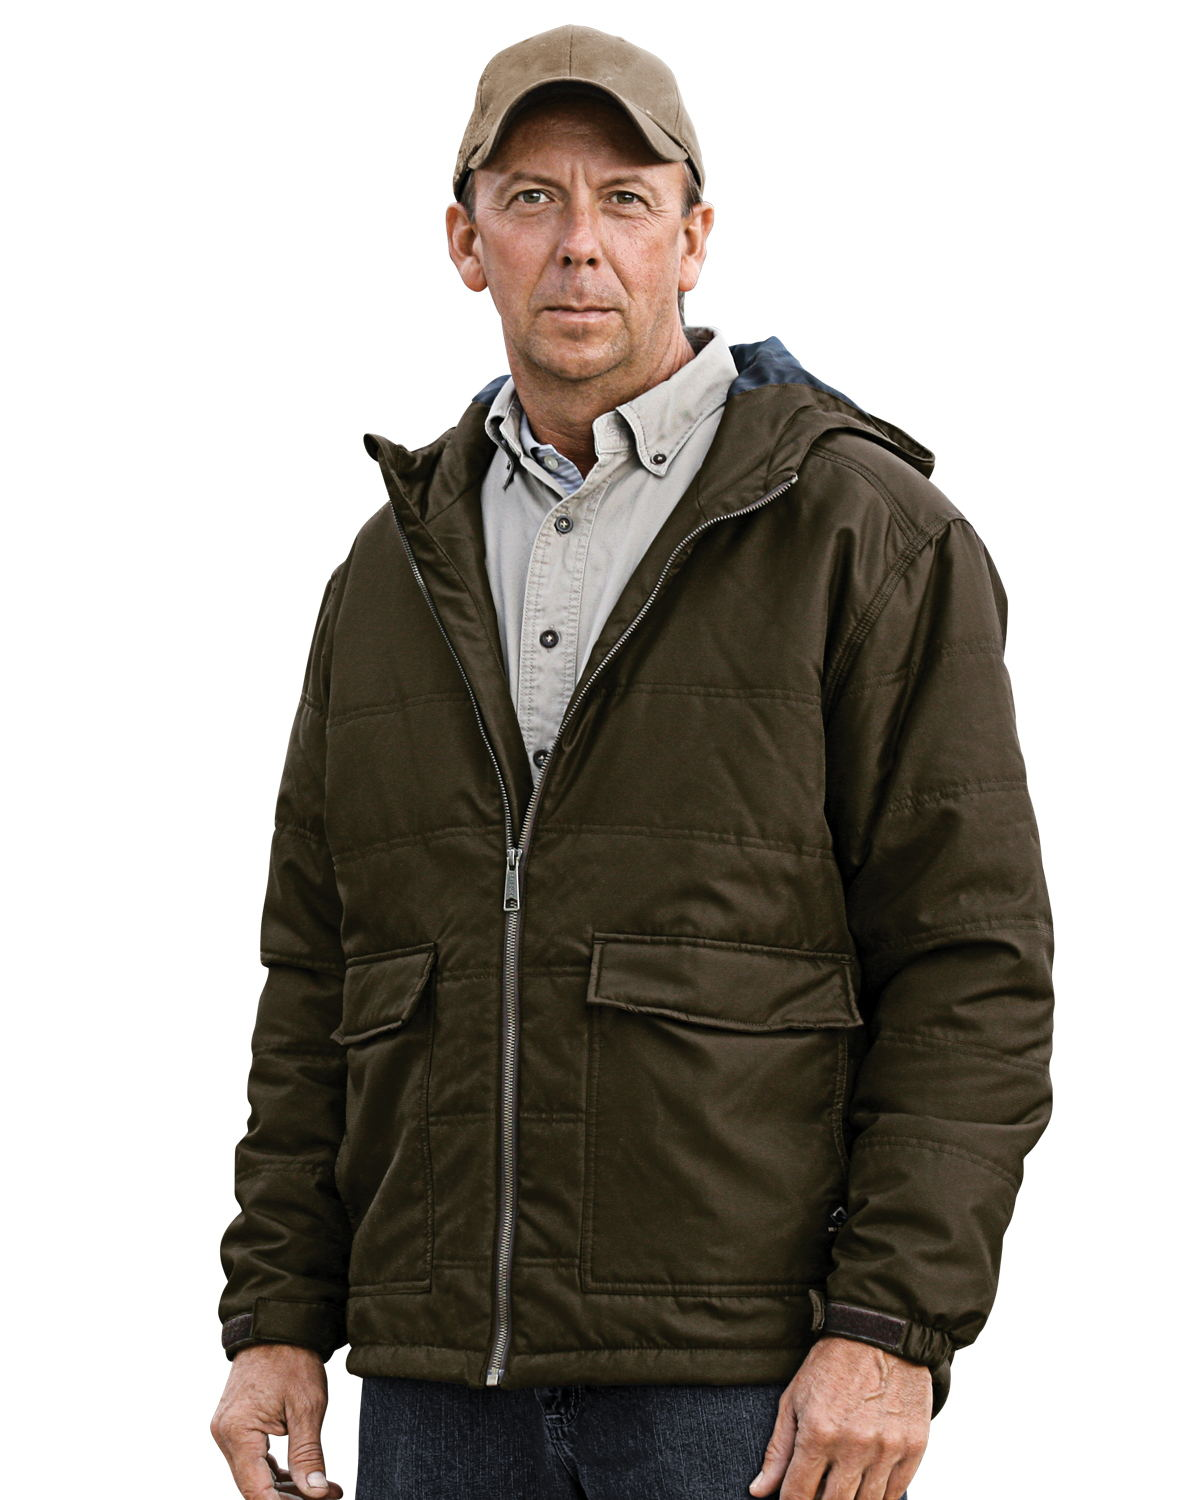 DRI DUCK 5336 - Trooper Tuff Tech Therma Puff Hooded Jacket